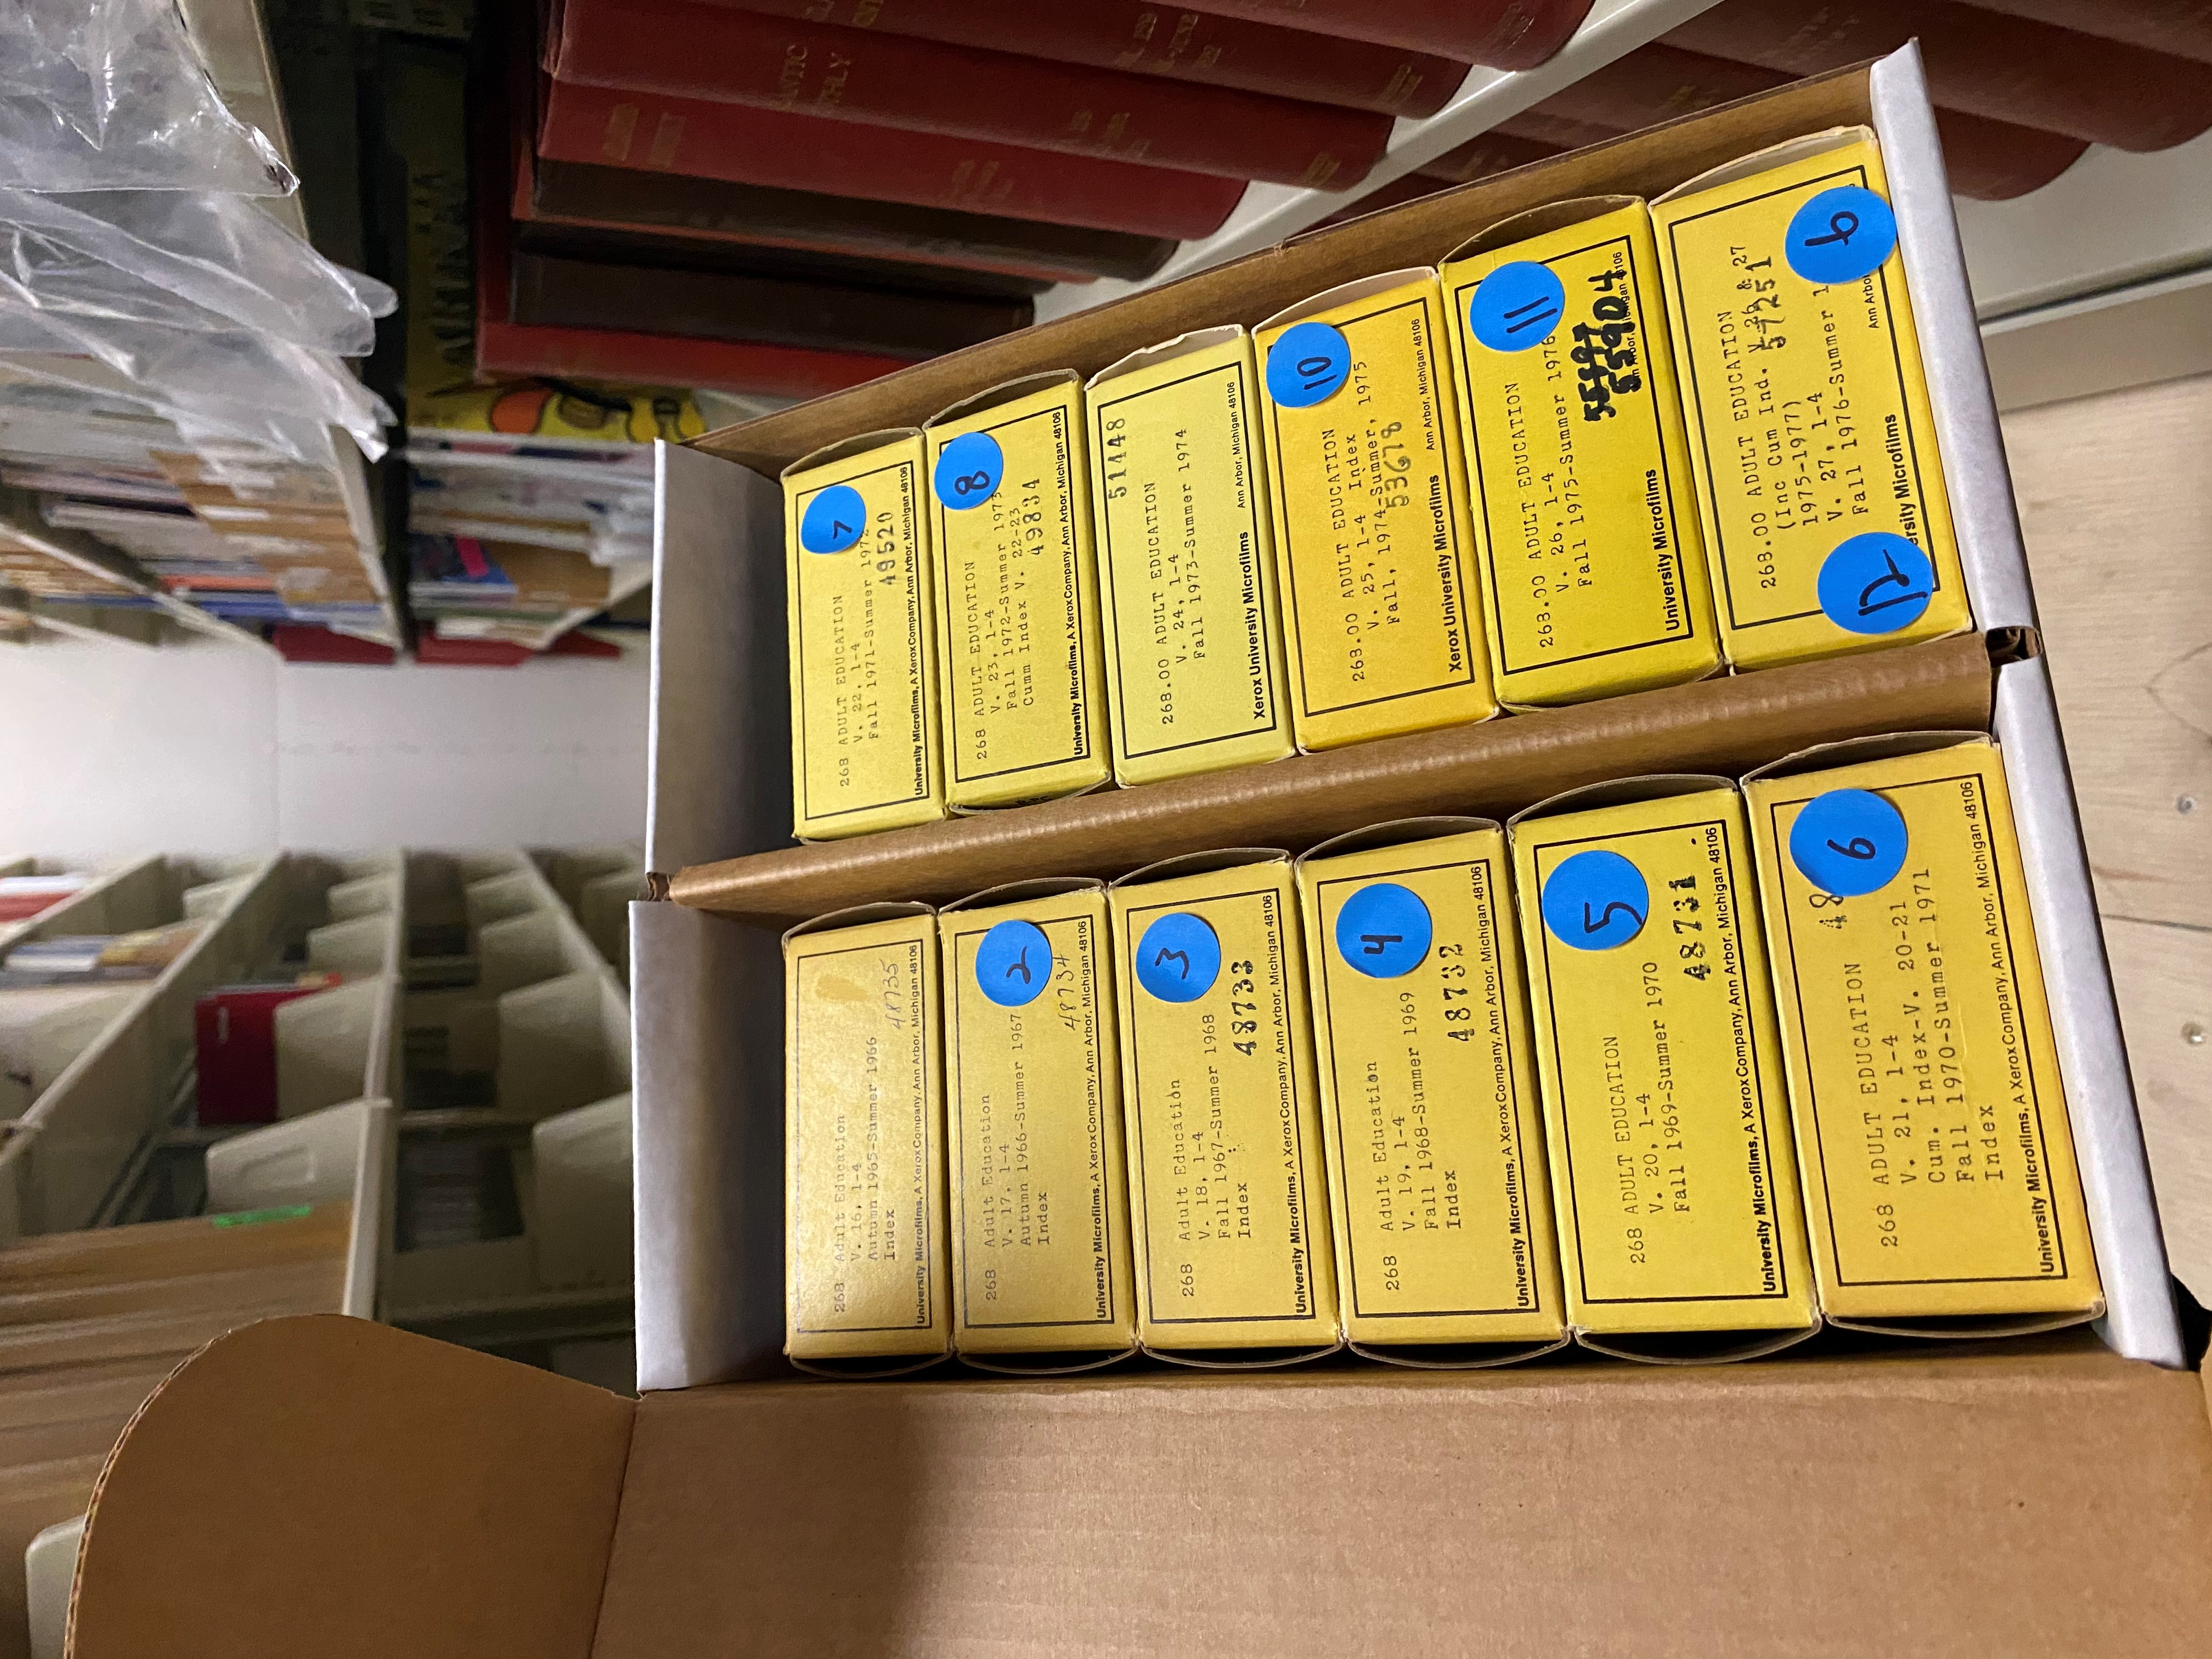 boxes of microfilm for adult education